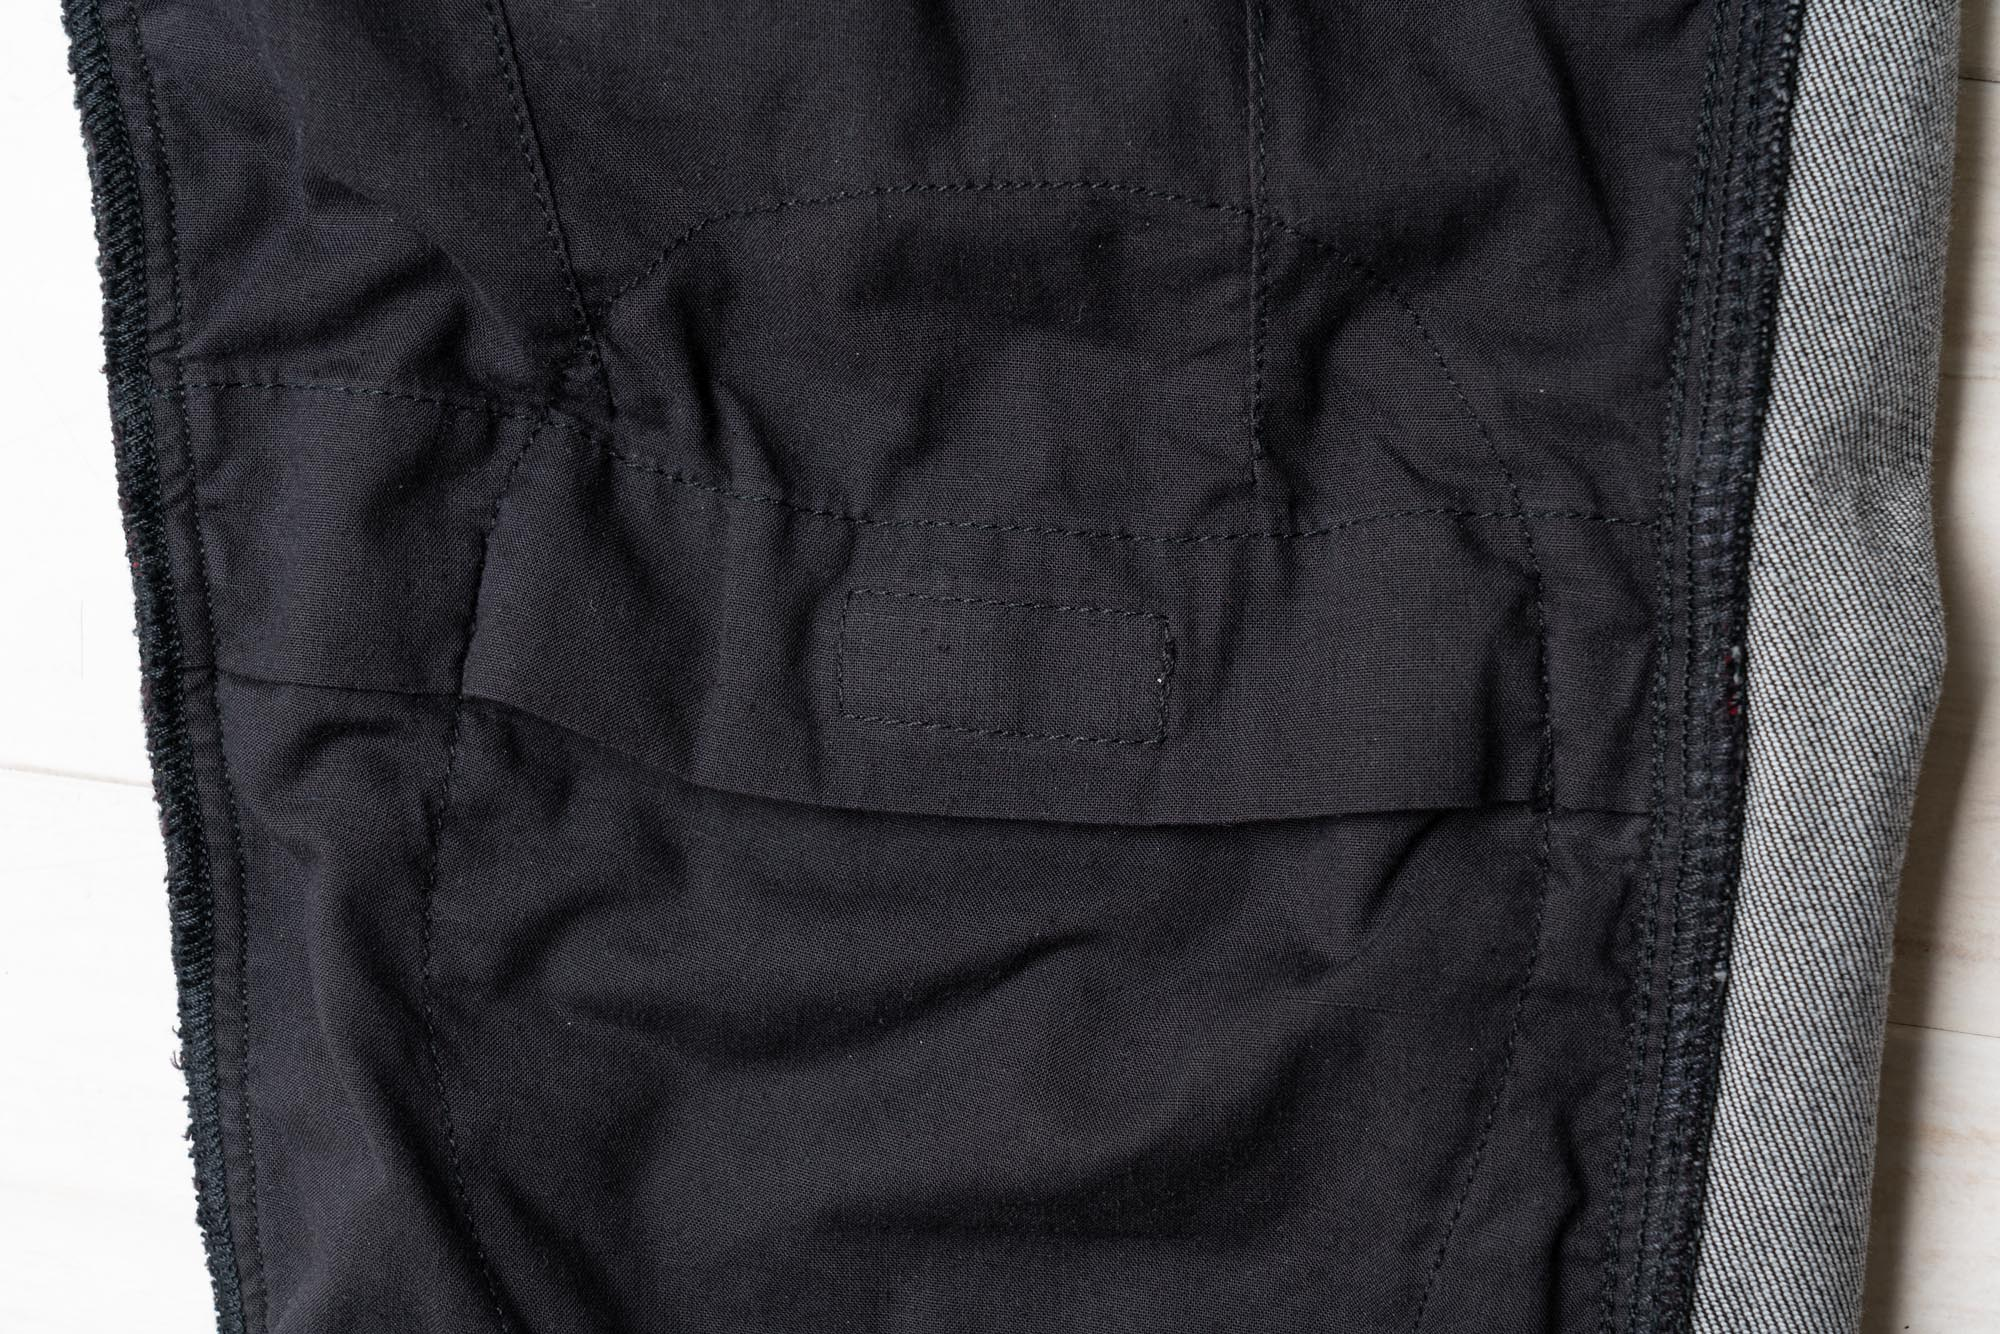 Hook and loop patch on the inside of Pando Moto jeans